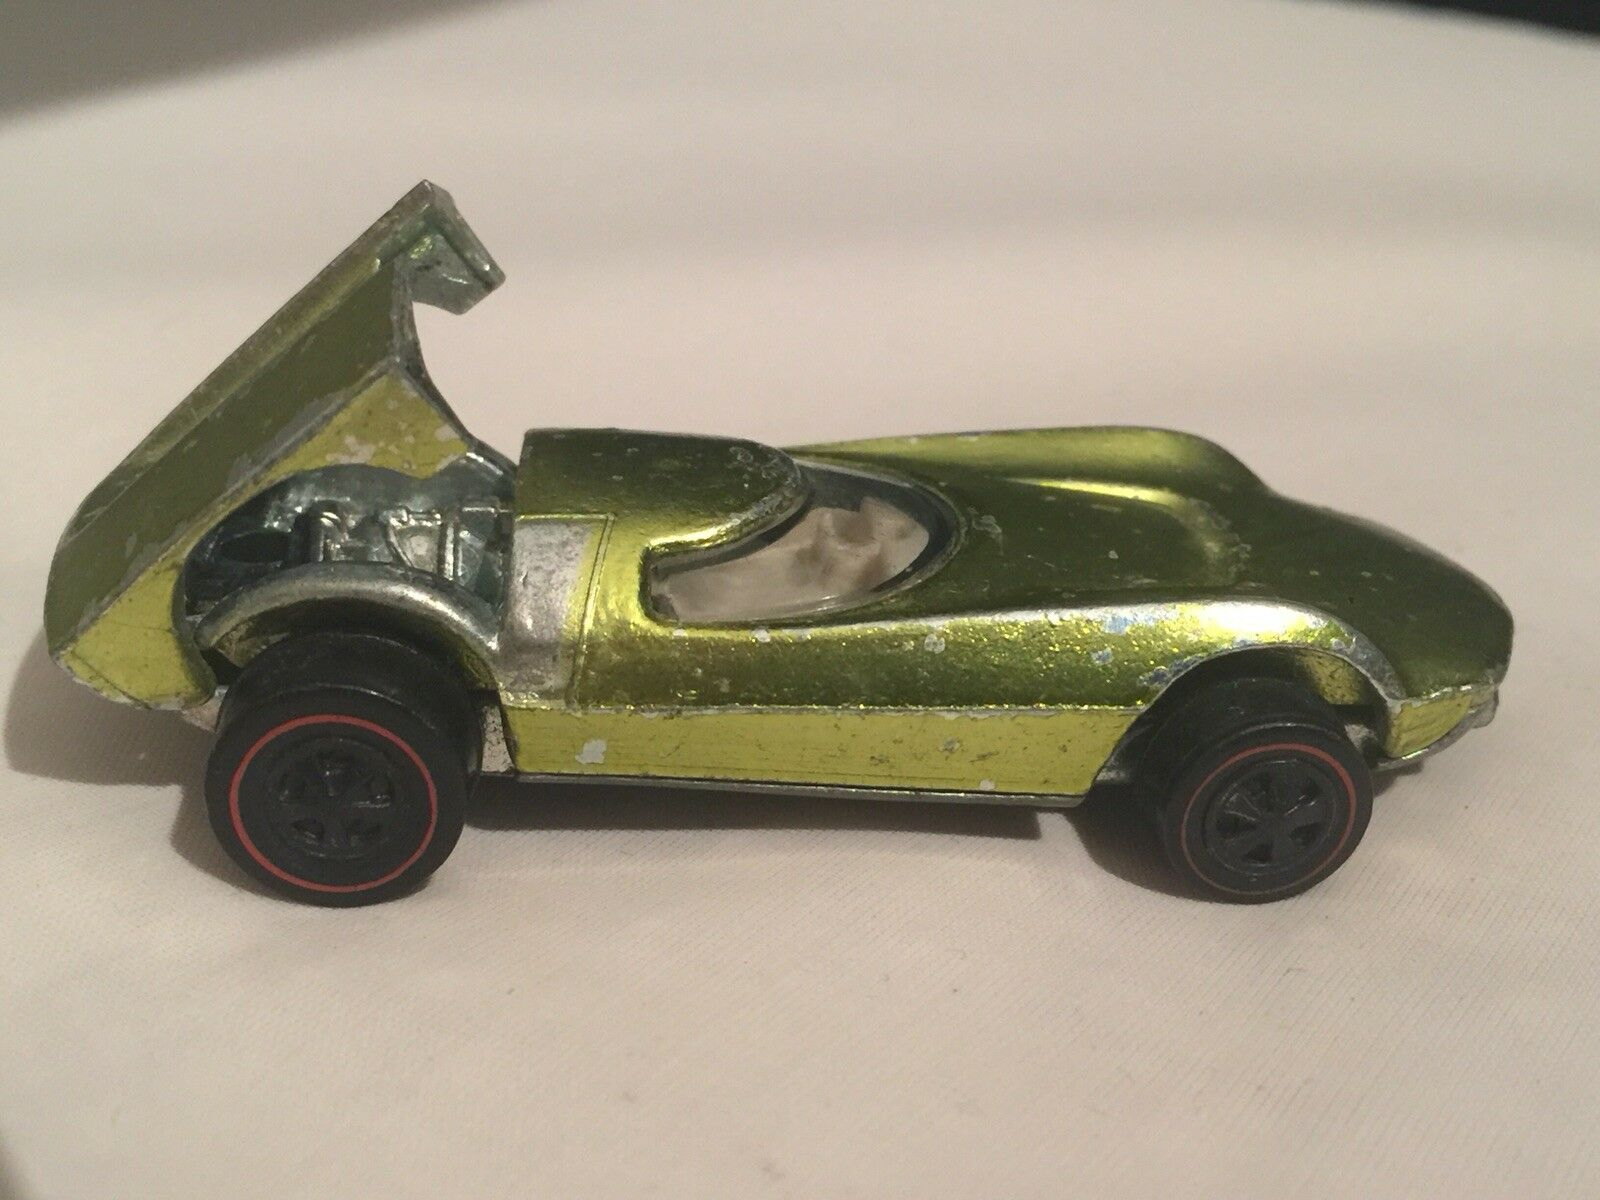 Very Rare 1968 Turbofire (Coolant Green) Hotwheels Mattel U.S.A